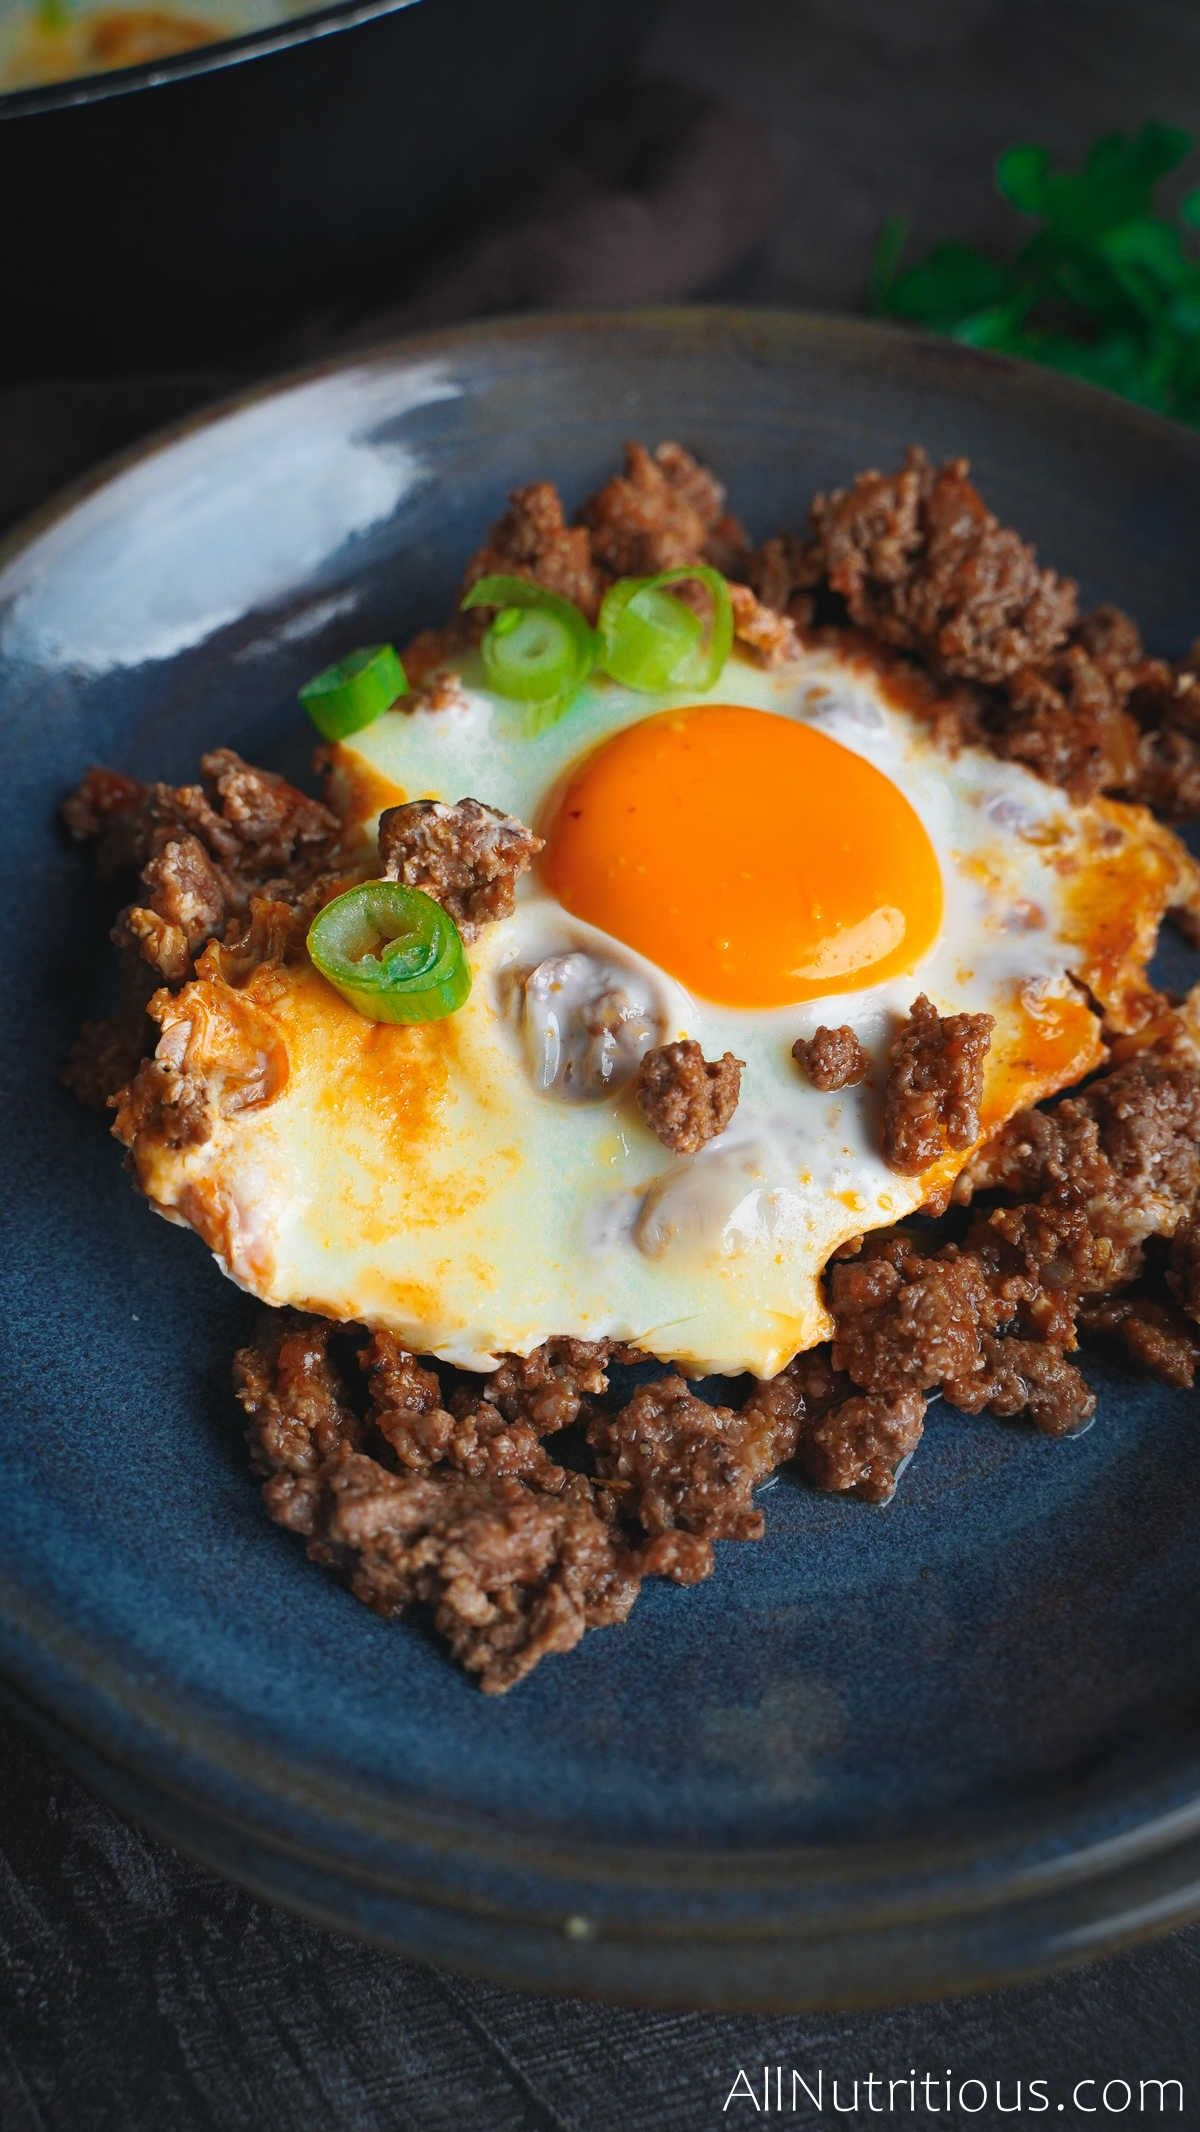 plate with egg and meat